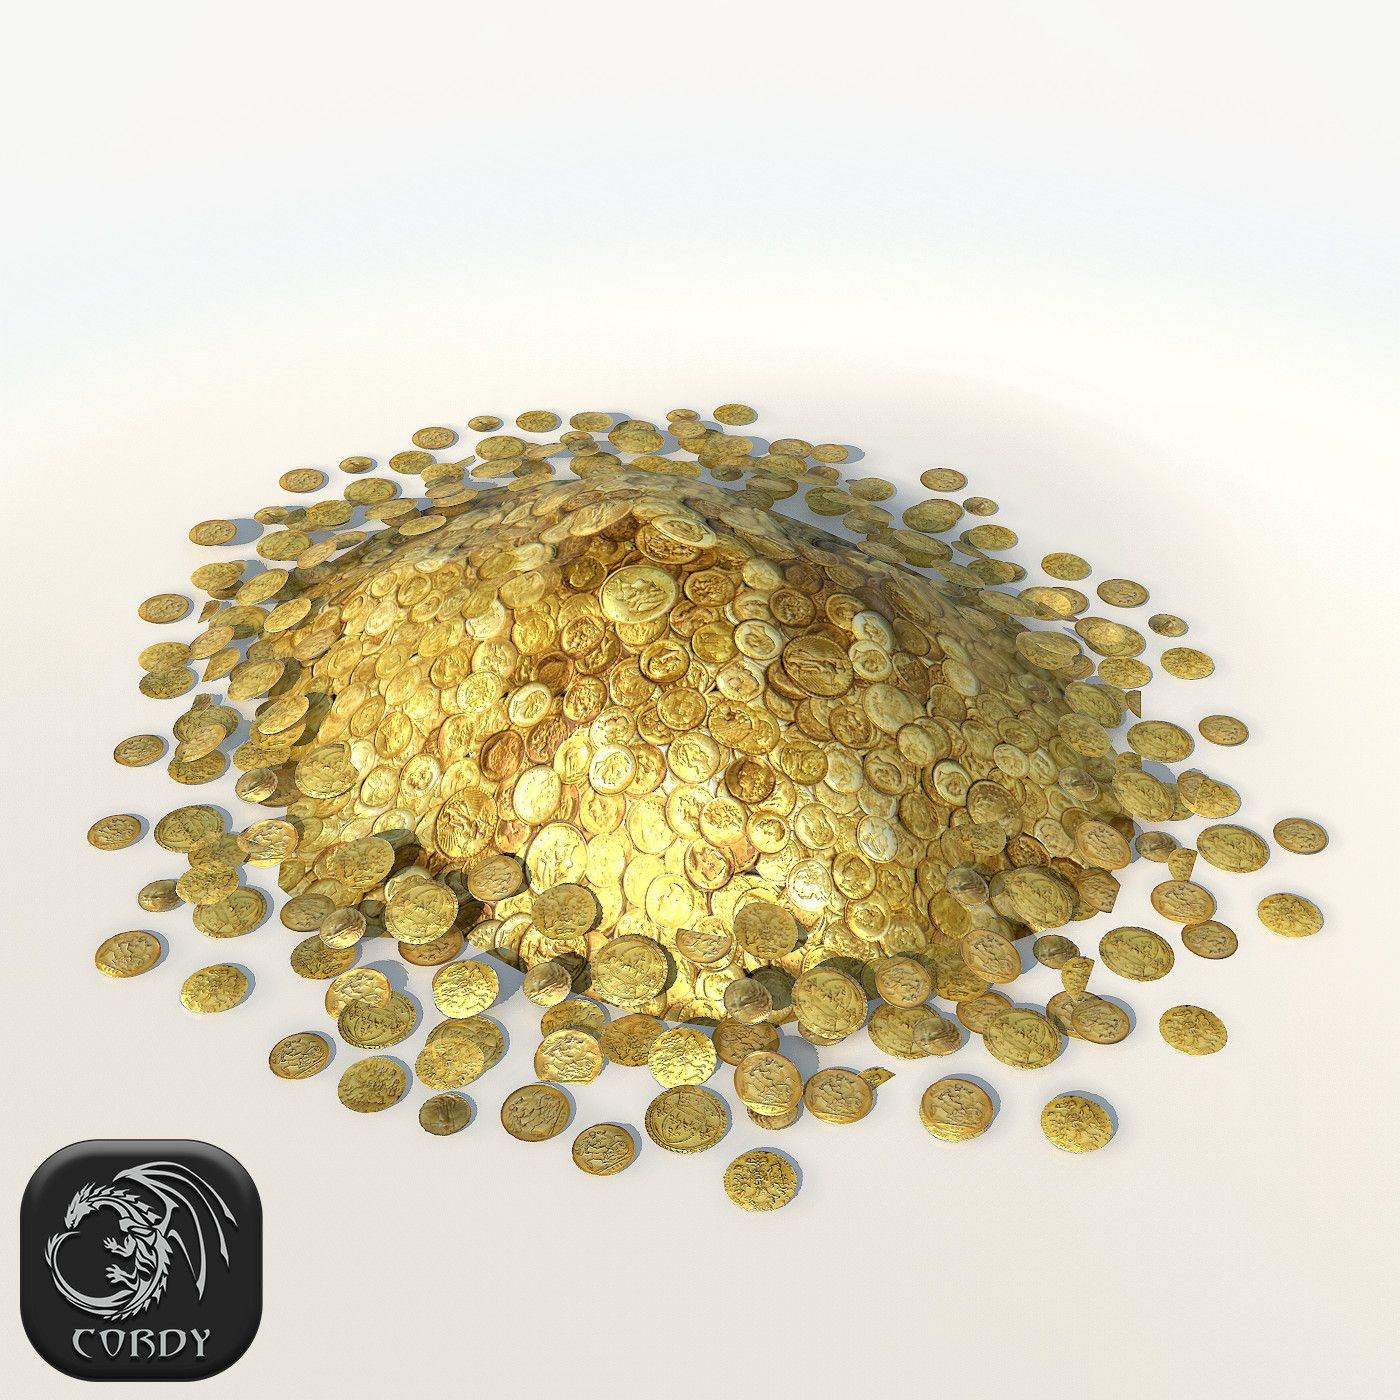 Model Pile Gold Coins